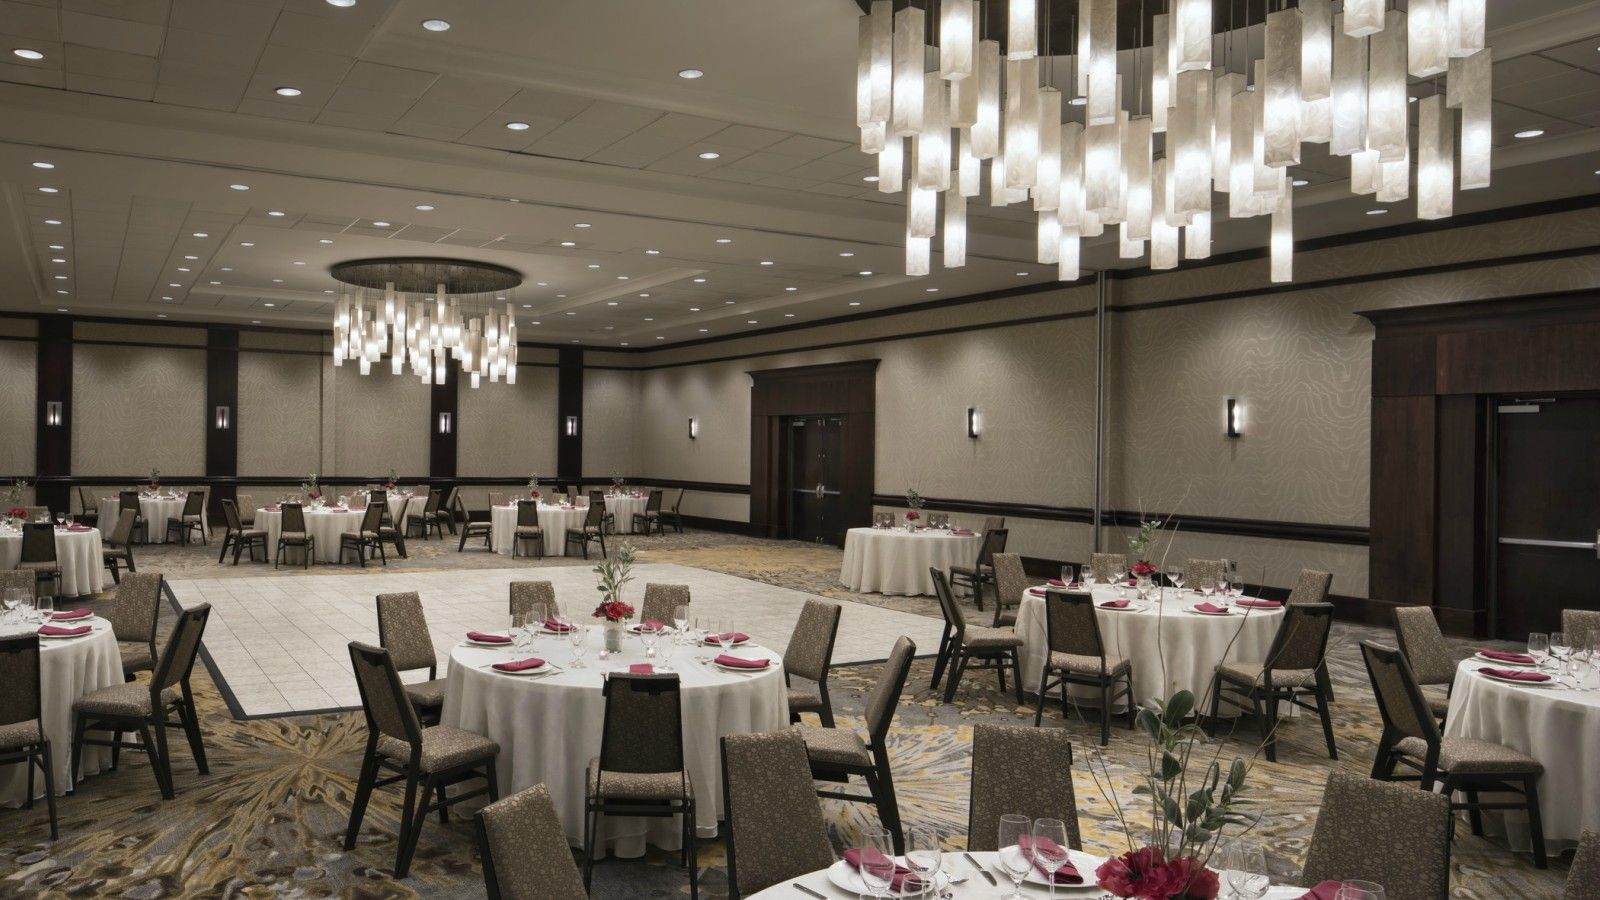 Wedding Venue in South Jersey - Grand Ballroom